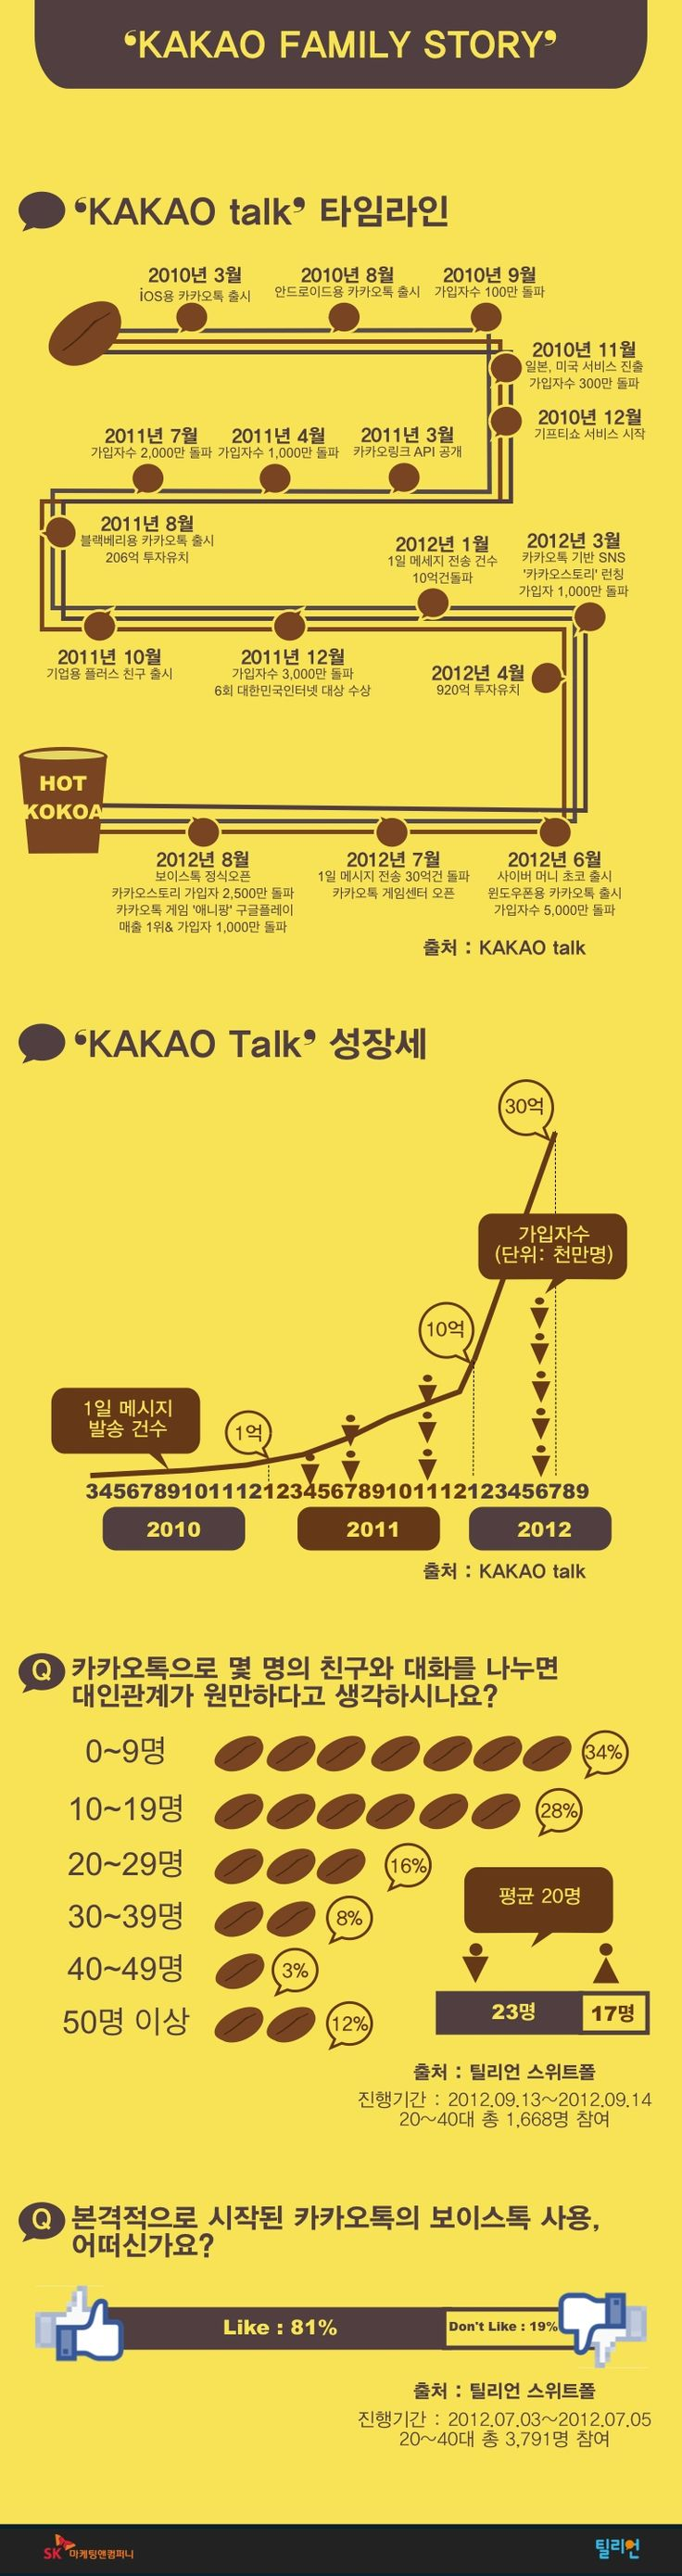 KAKAO Talk Family story